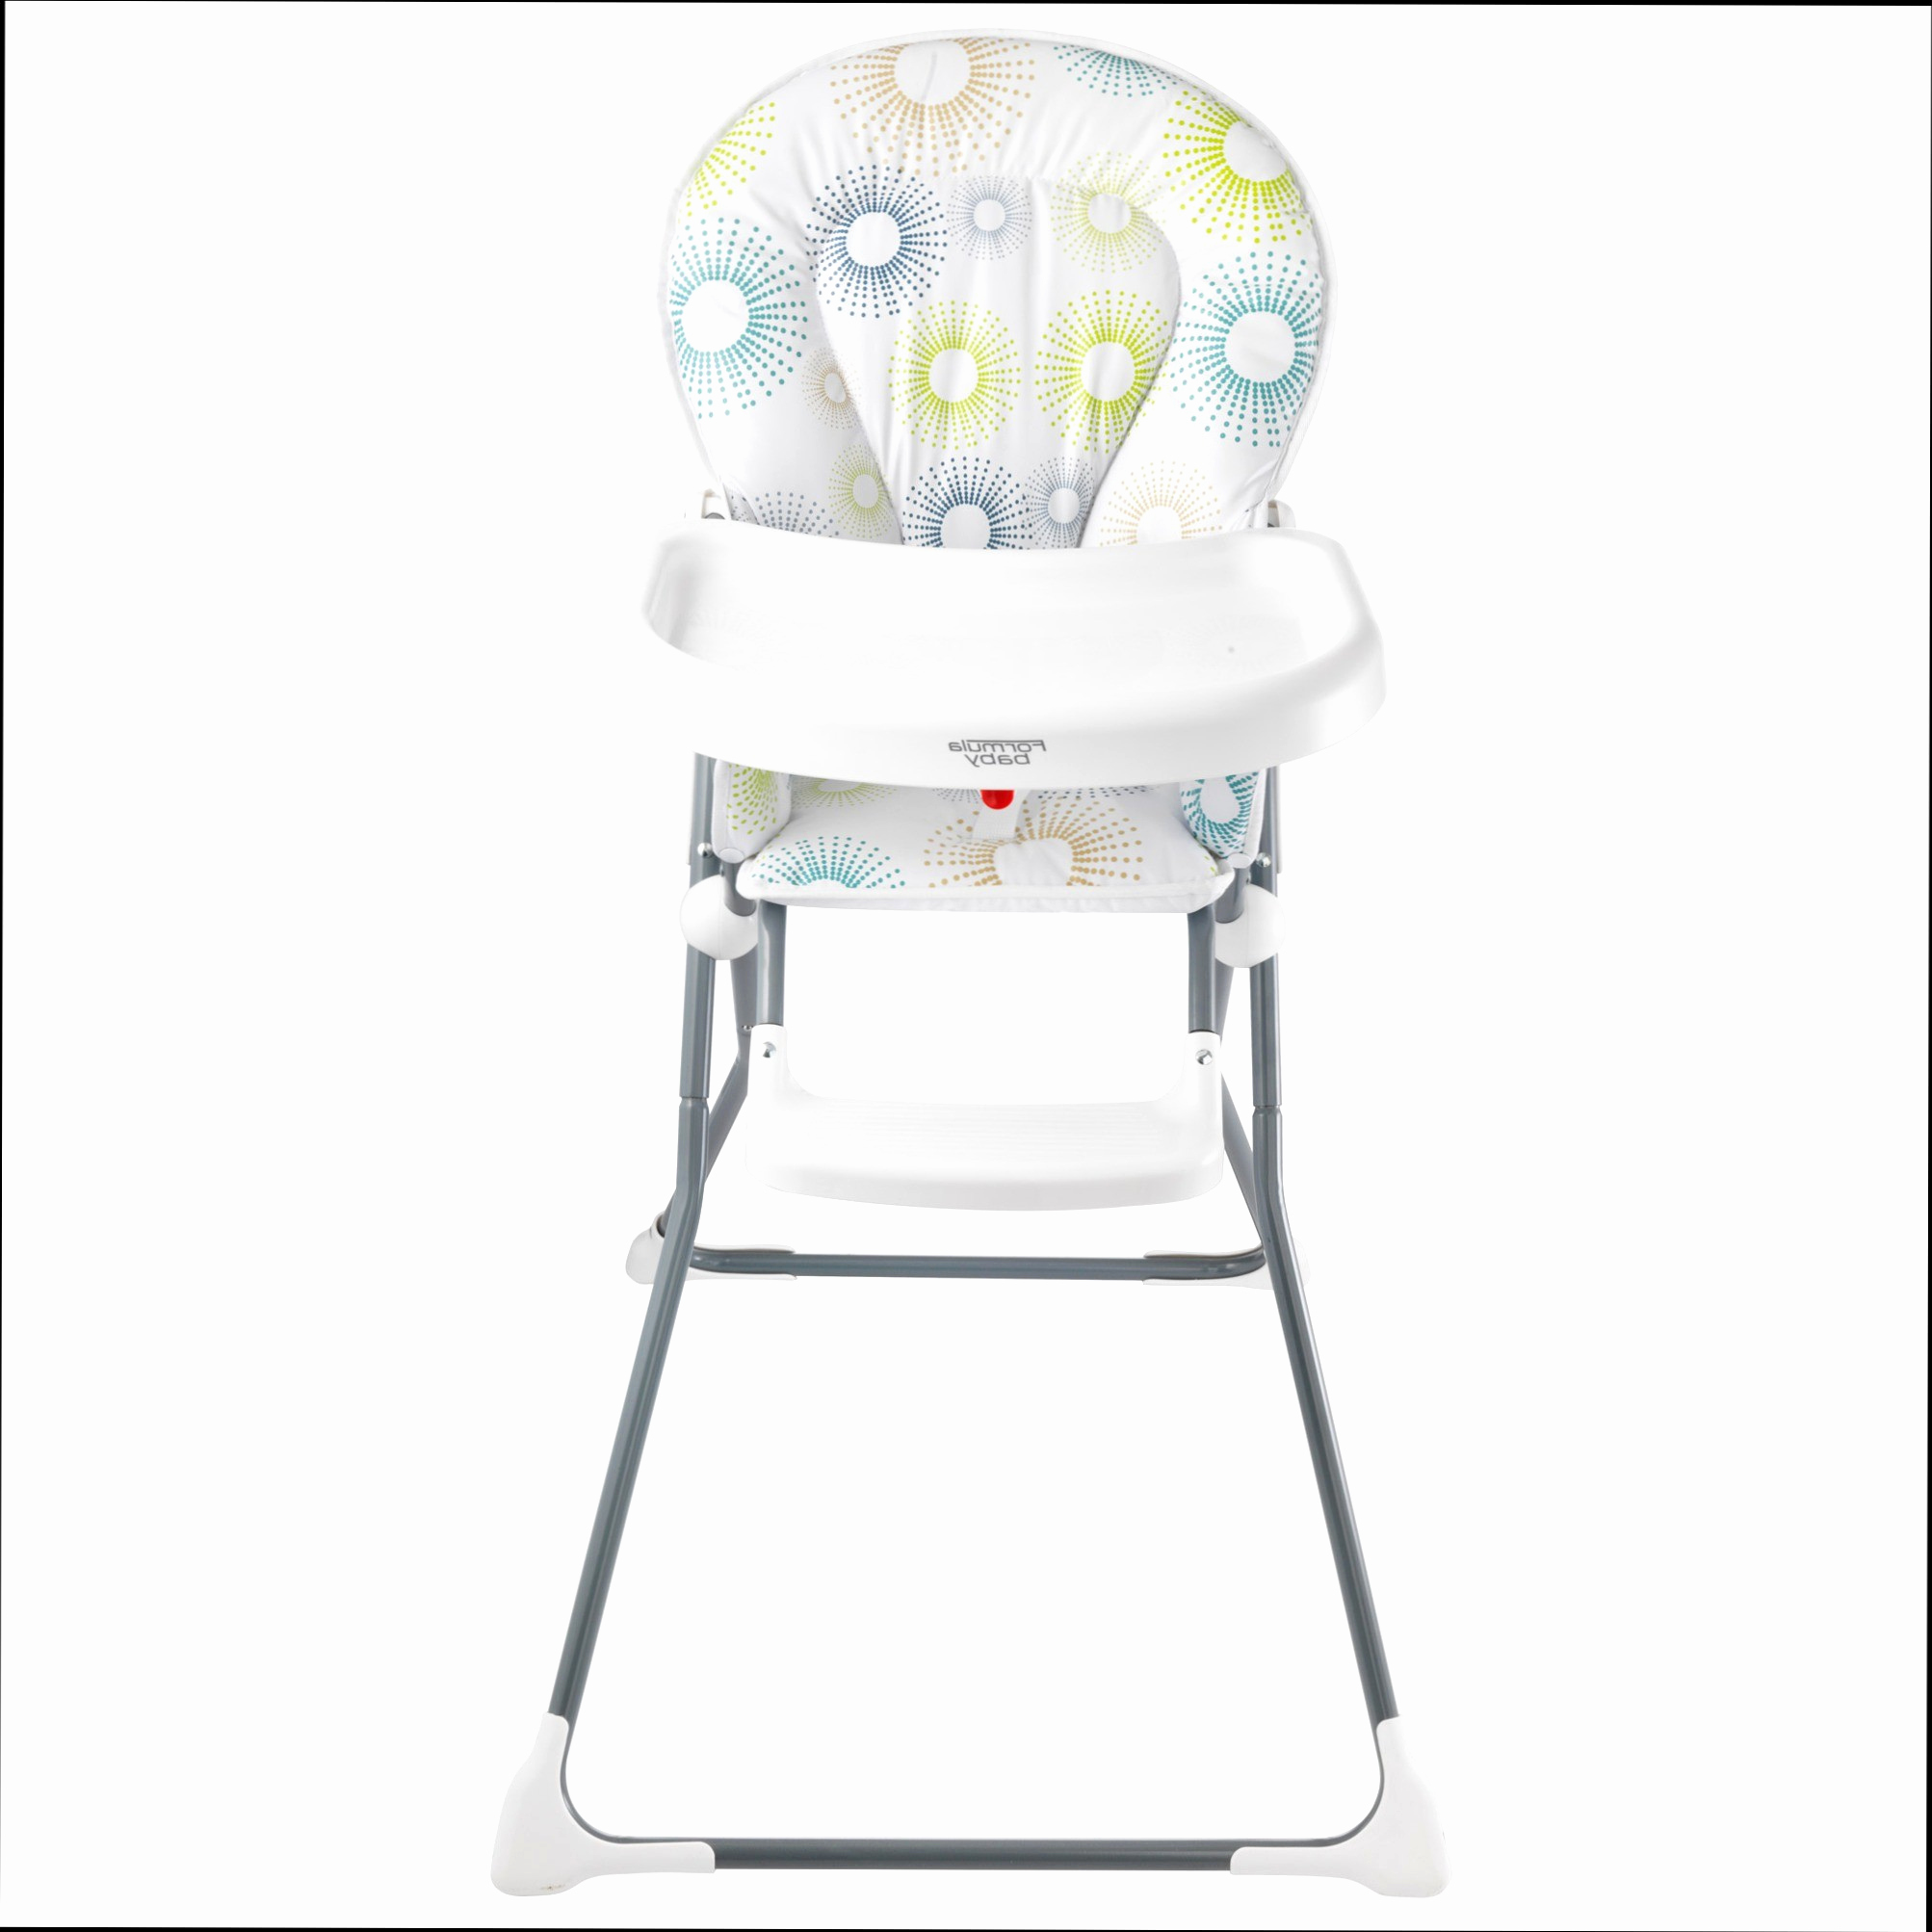 Peg Perego Hochstuhl Prima Pappa Diner Best Od Inspiration Prima Pappa Hochstuhl Elegant Unique Graco High Chair